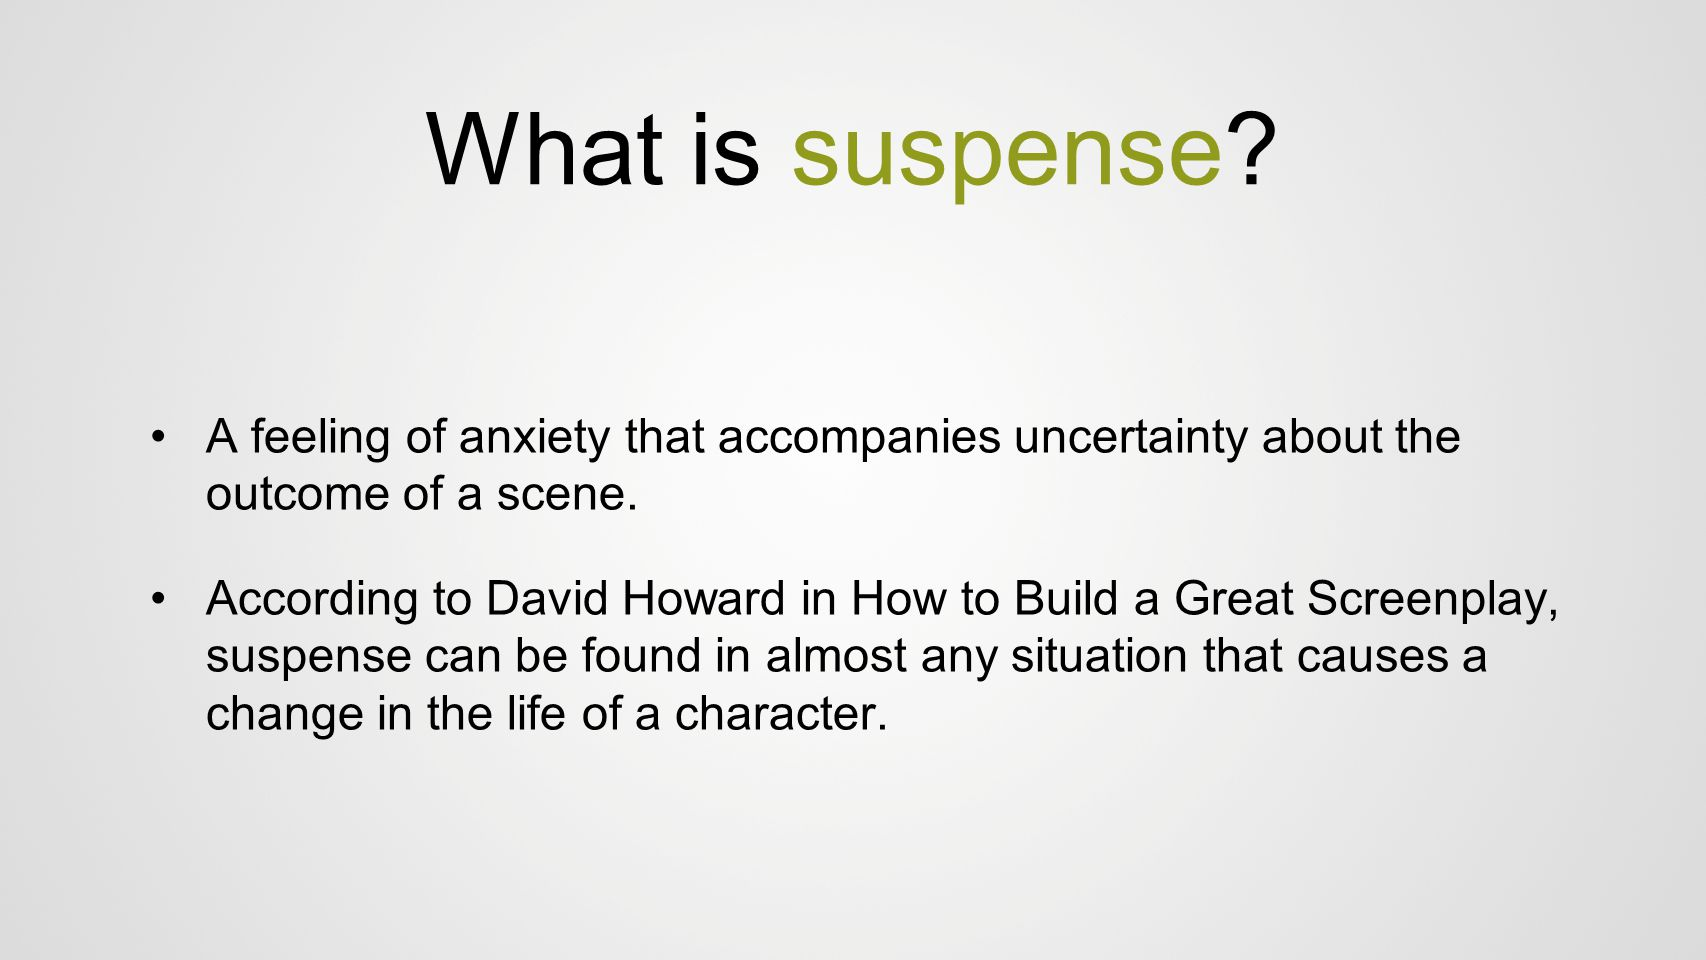 What is suspense A feeling of anxiety that accompanies uncertainty about the outcome of a scene.